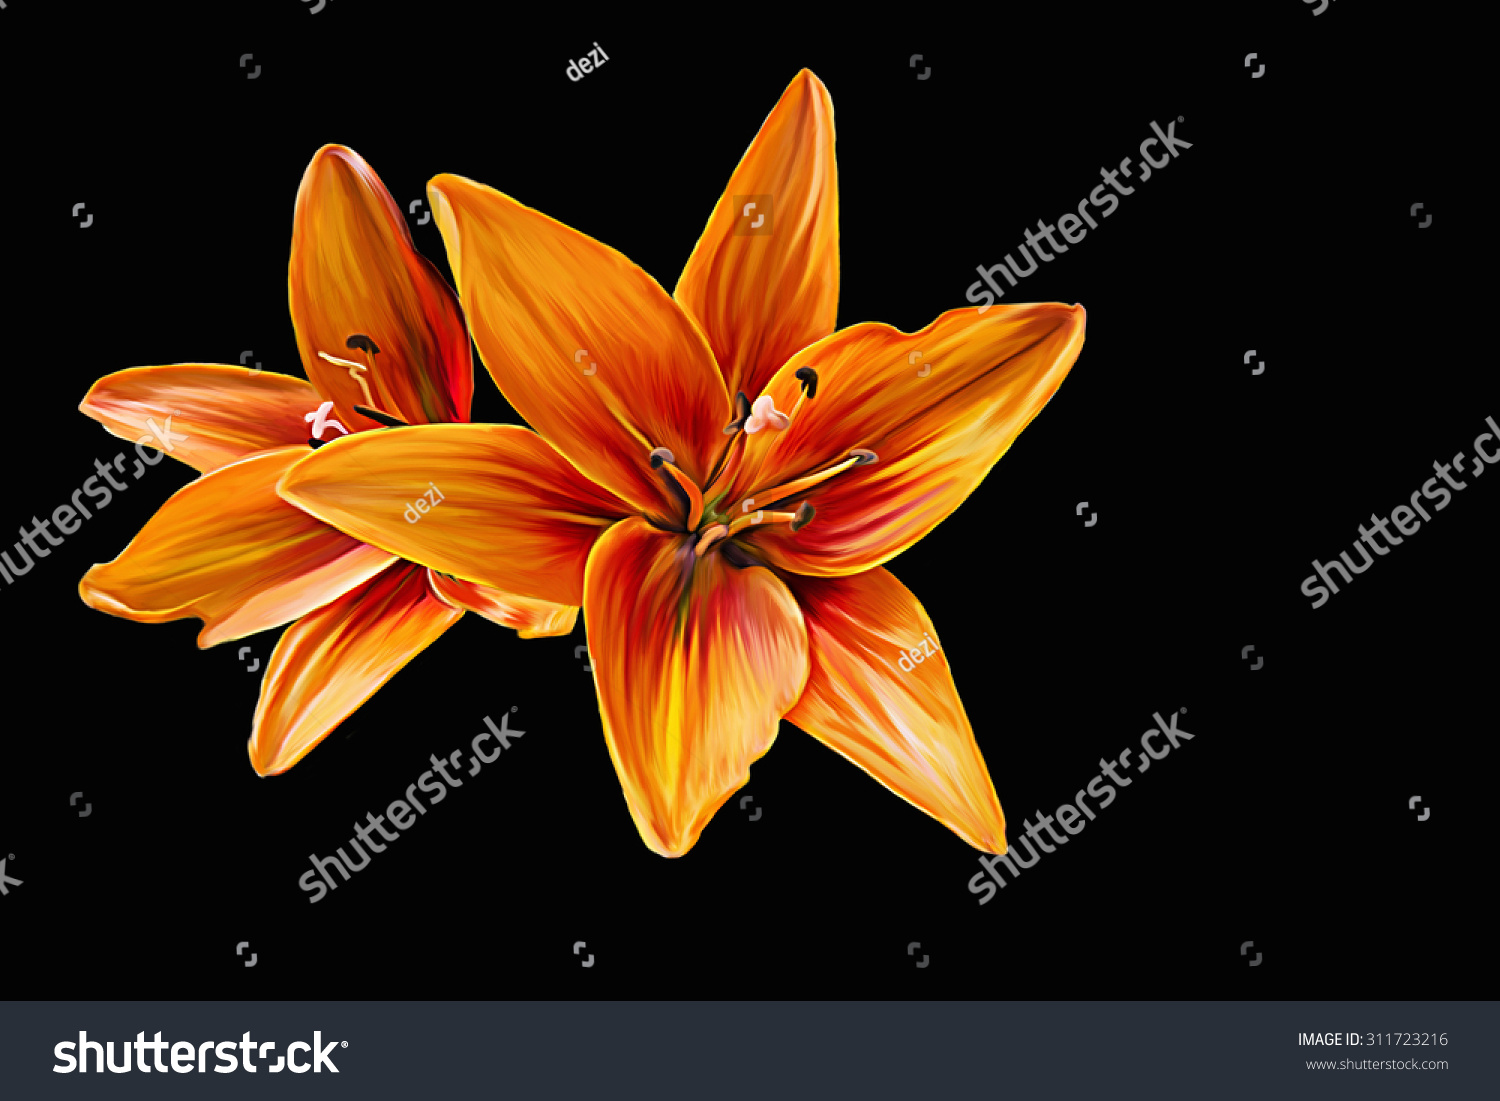 Royalty Free Stock Illustration Of Drawing Lily Flower Oil Painting